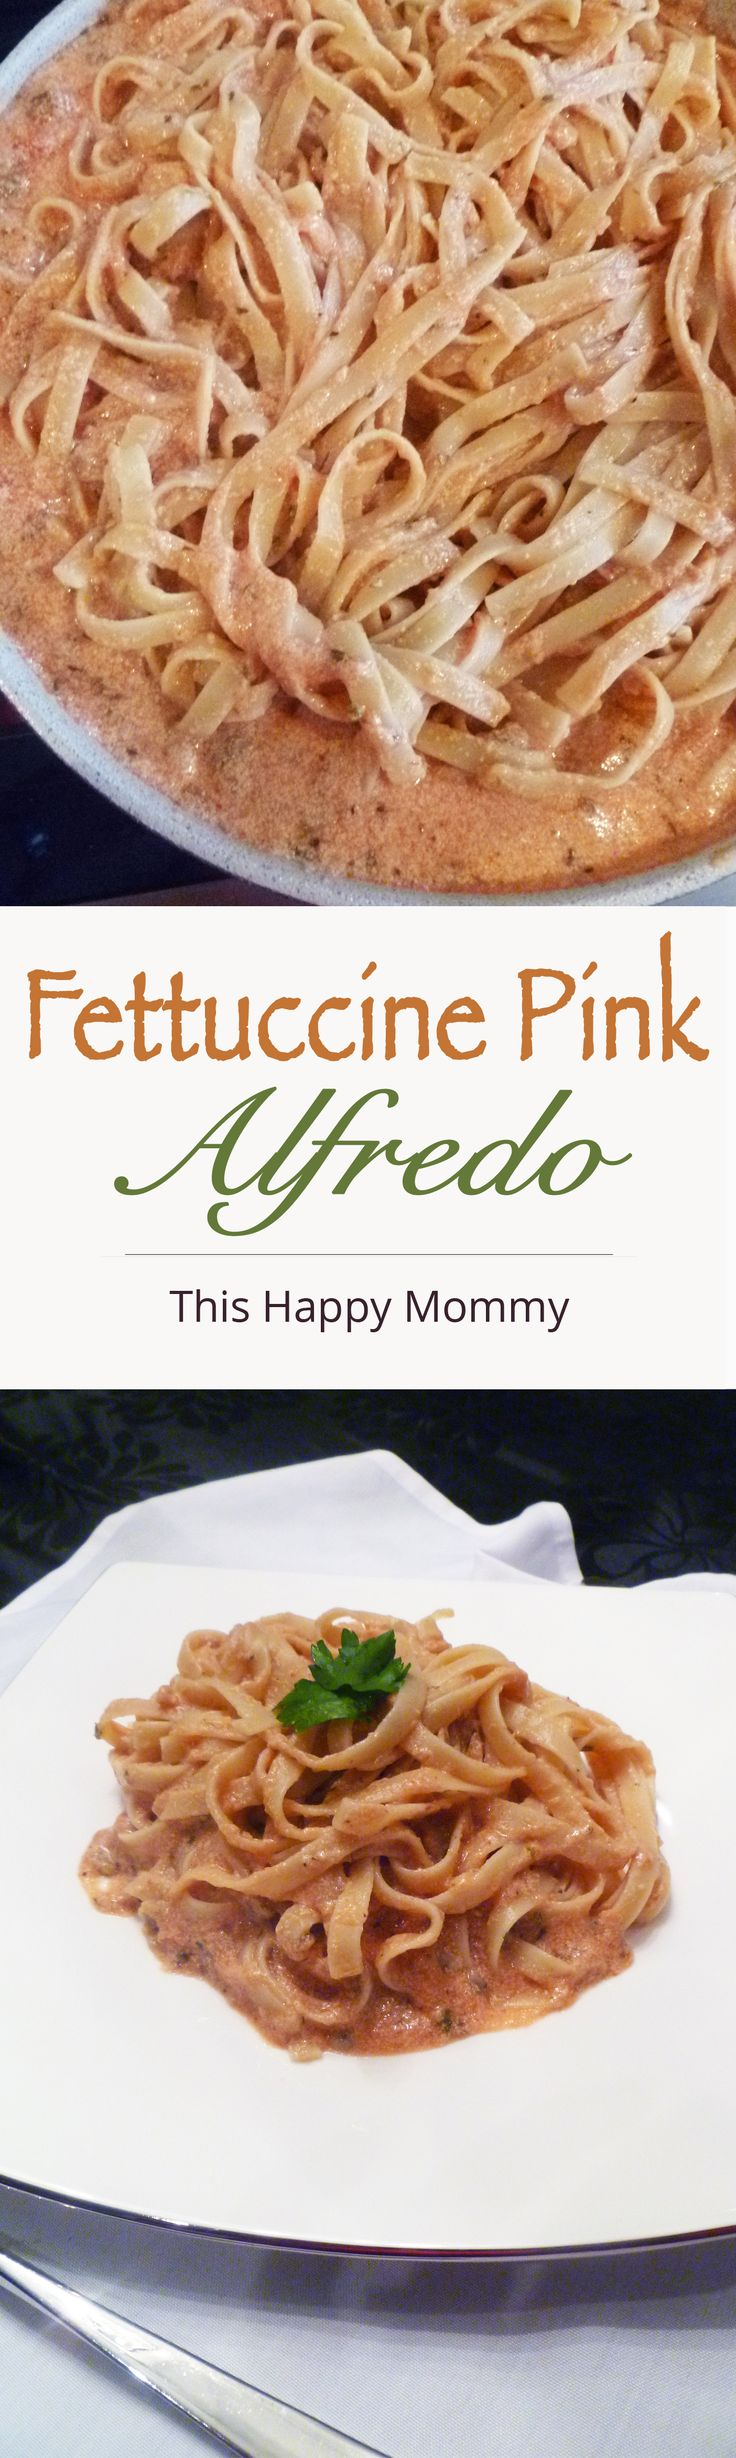 A tasty spin on the classic dish - Fettuccine Pink Alfredo is a rich and creamy sauce filled with roasted garlic, herbs and tomato paste. | thishappymommy.com